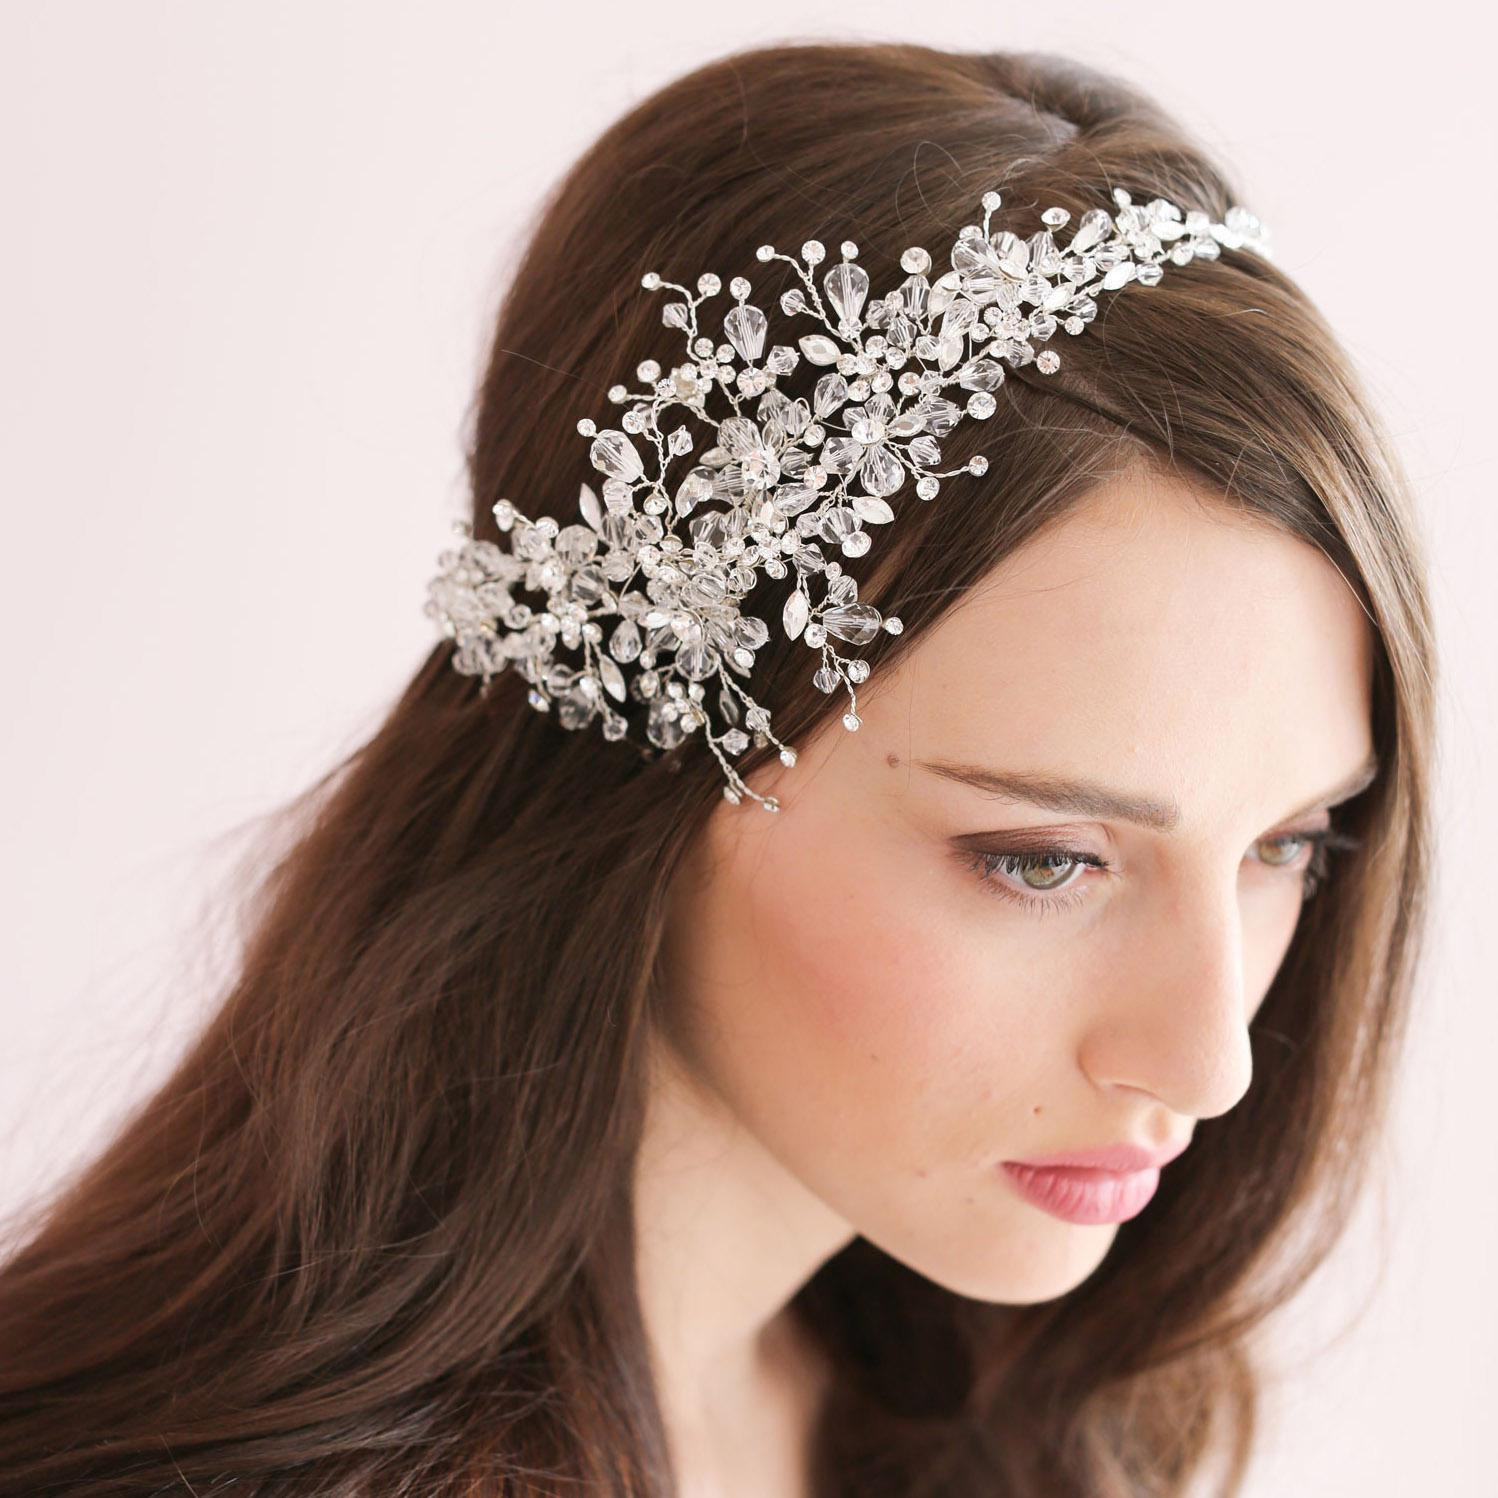 Flower Wedding Headpieces: Handmade Crystal Ice Bridal Sparking Headpiece Beaded